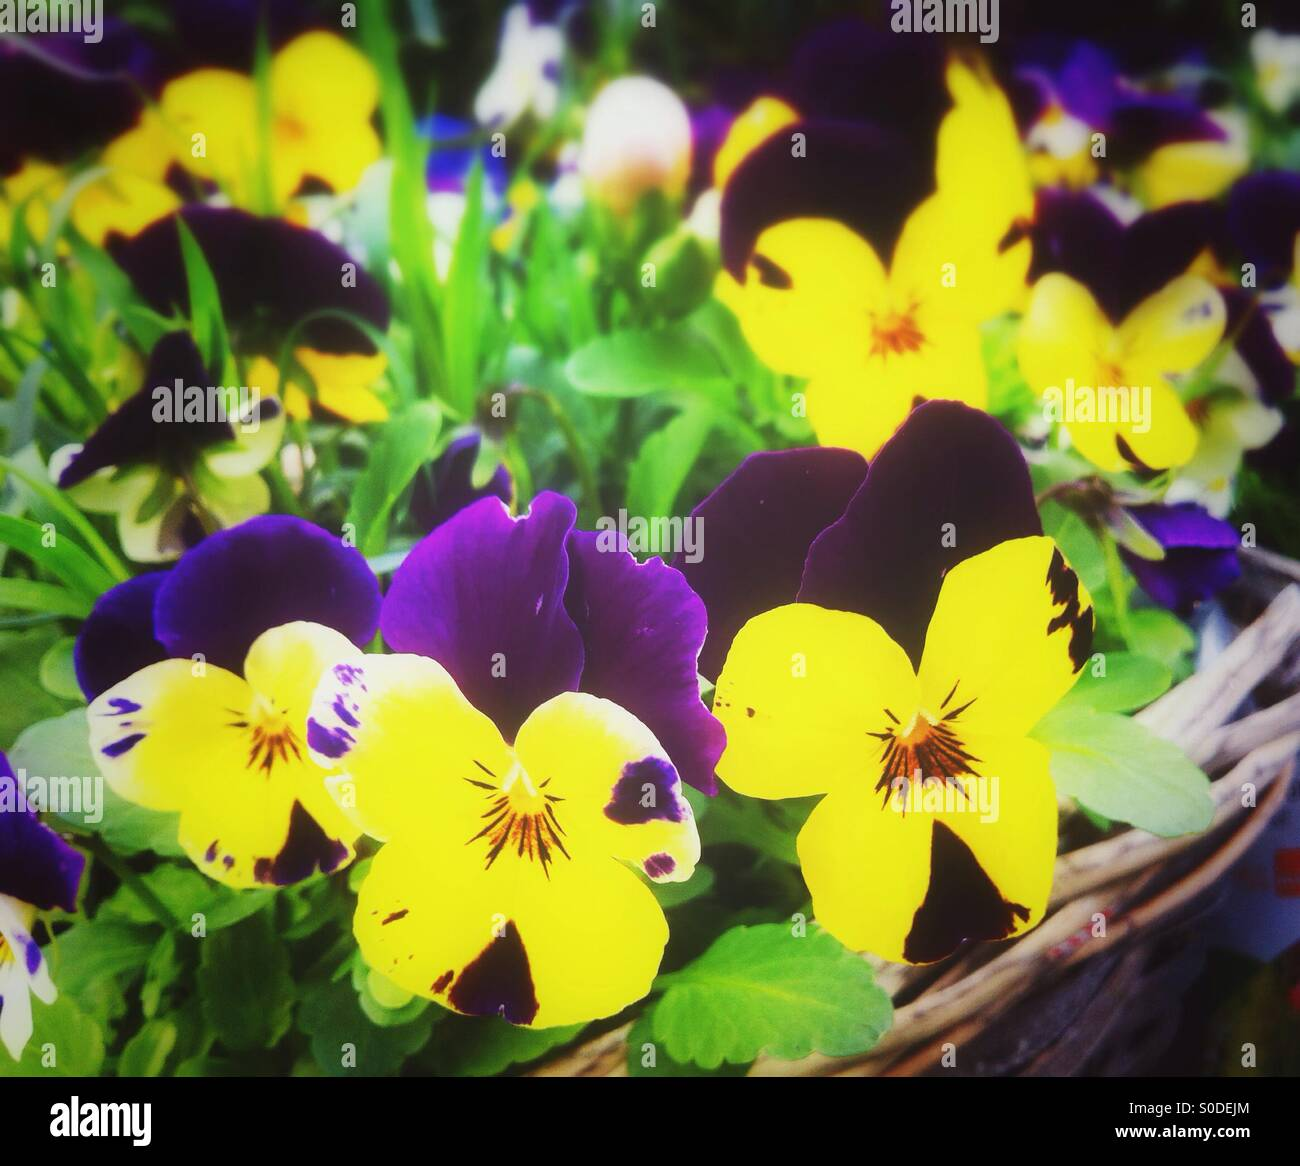 Yellow And Purple Pansy Stock Photos Yellow And Purple Pansy Stock